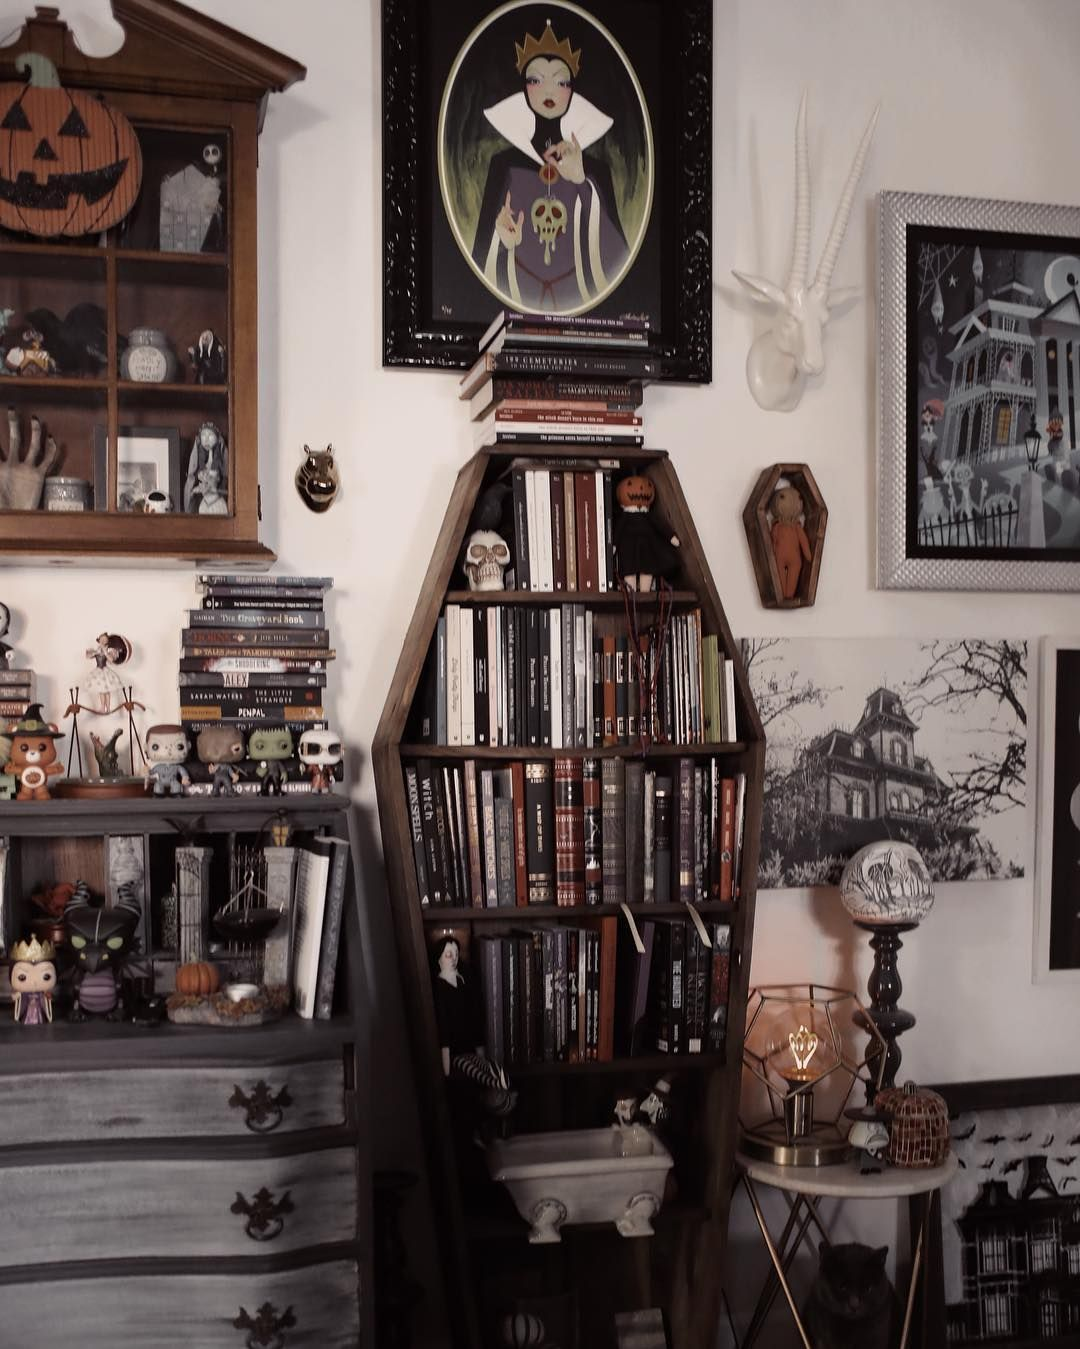 Christina On Instagram Where Do You Keep Your Thoughts Coffin Bookshelf Is By Halloweenpsycho With Images Goth Home Decor